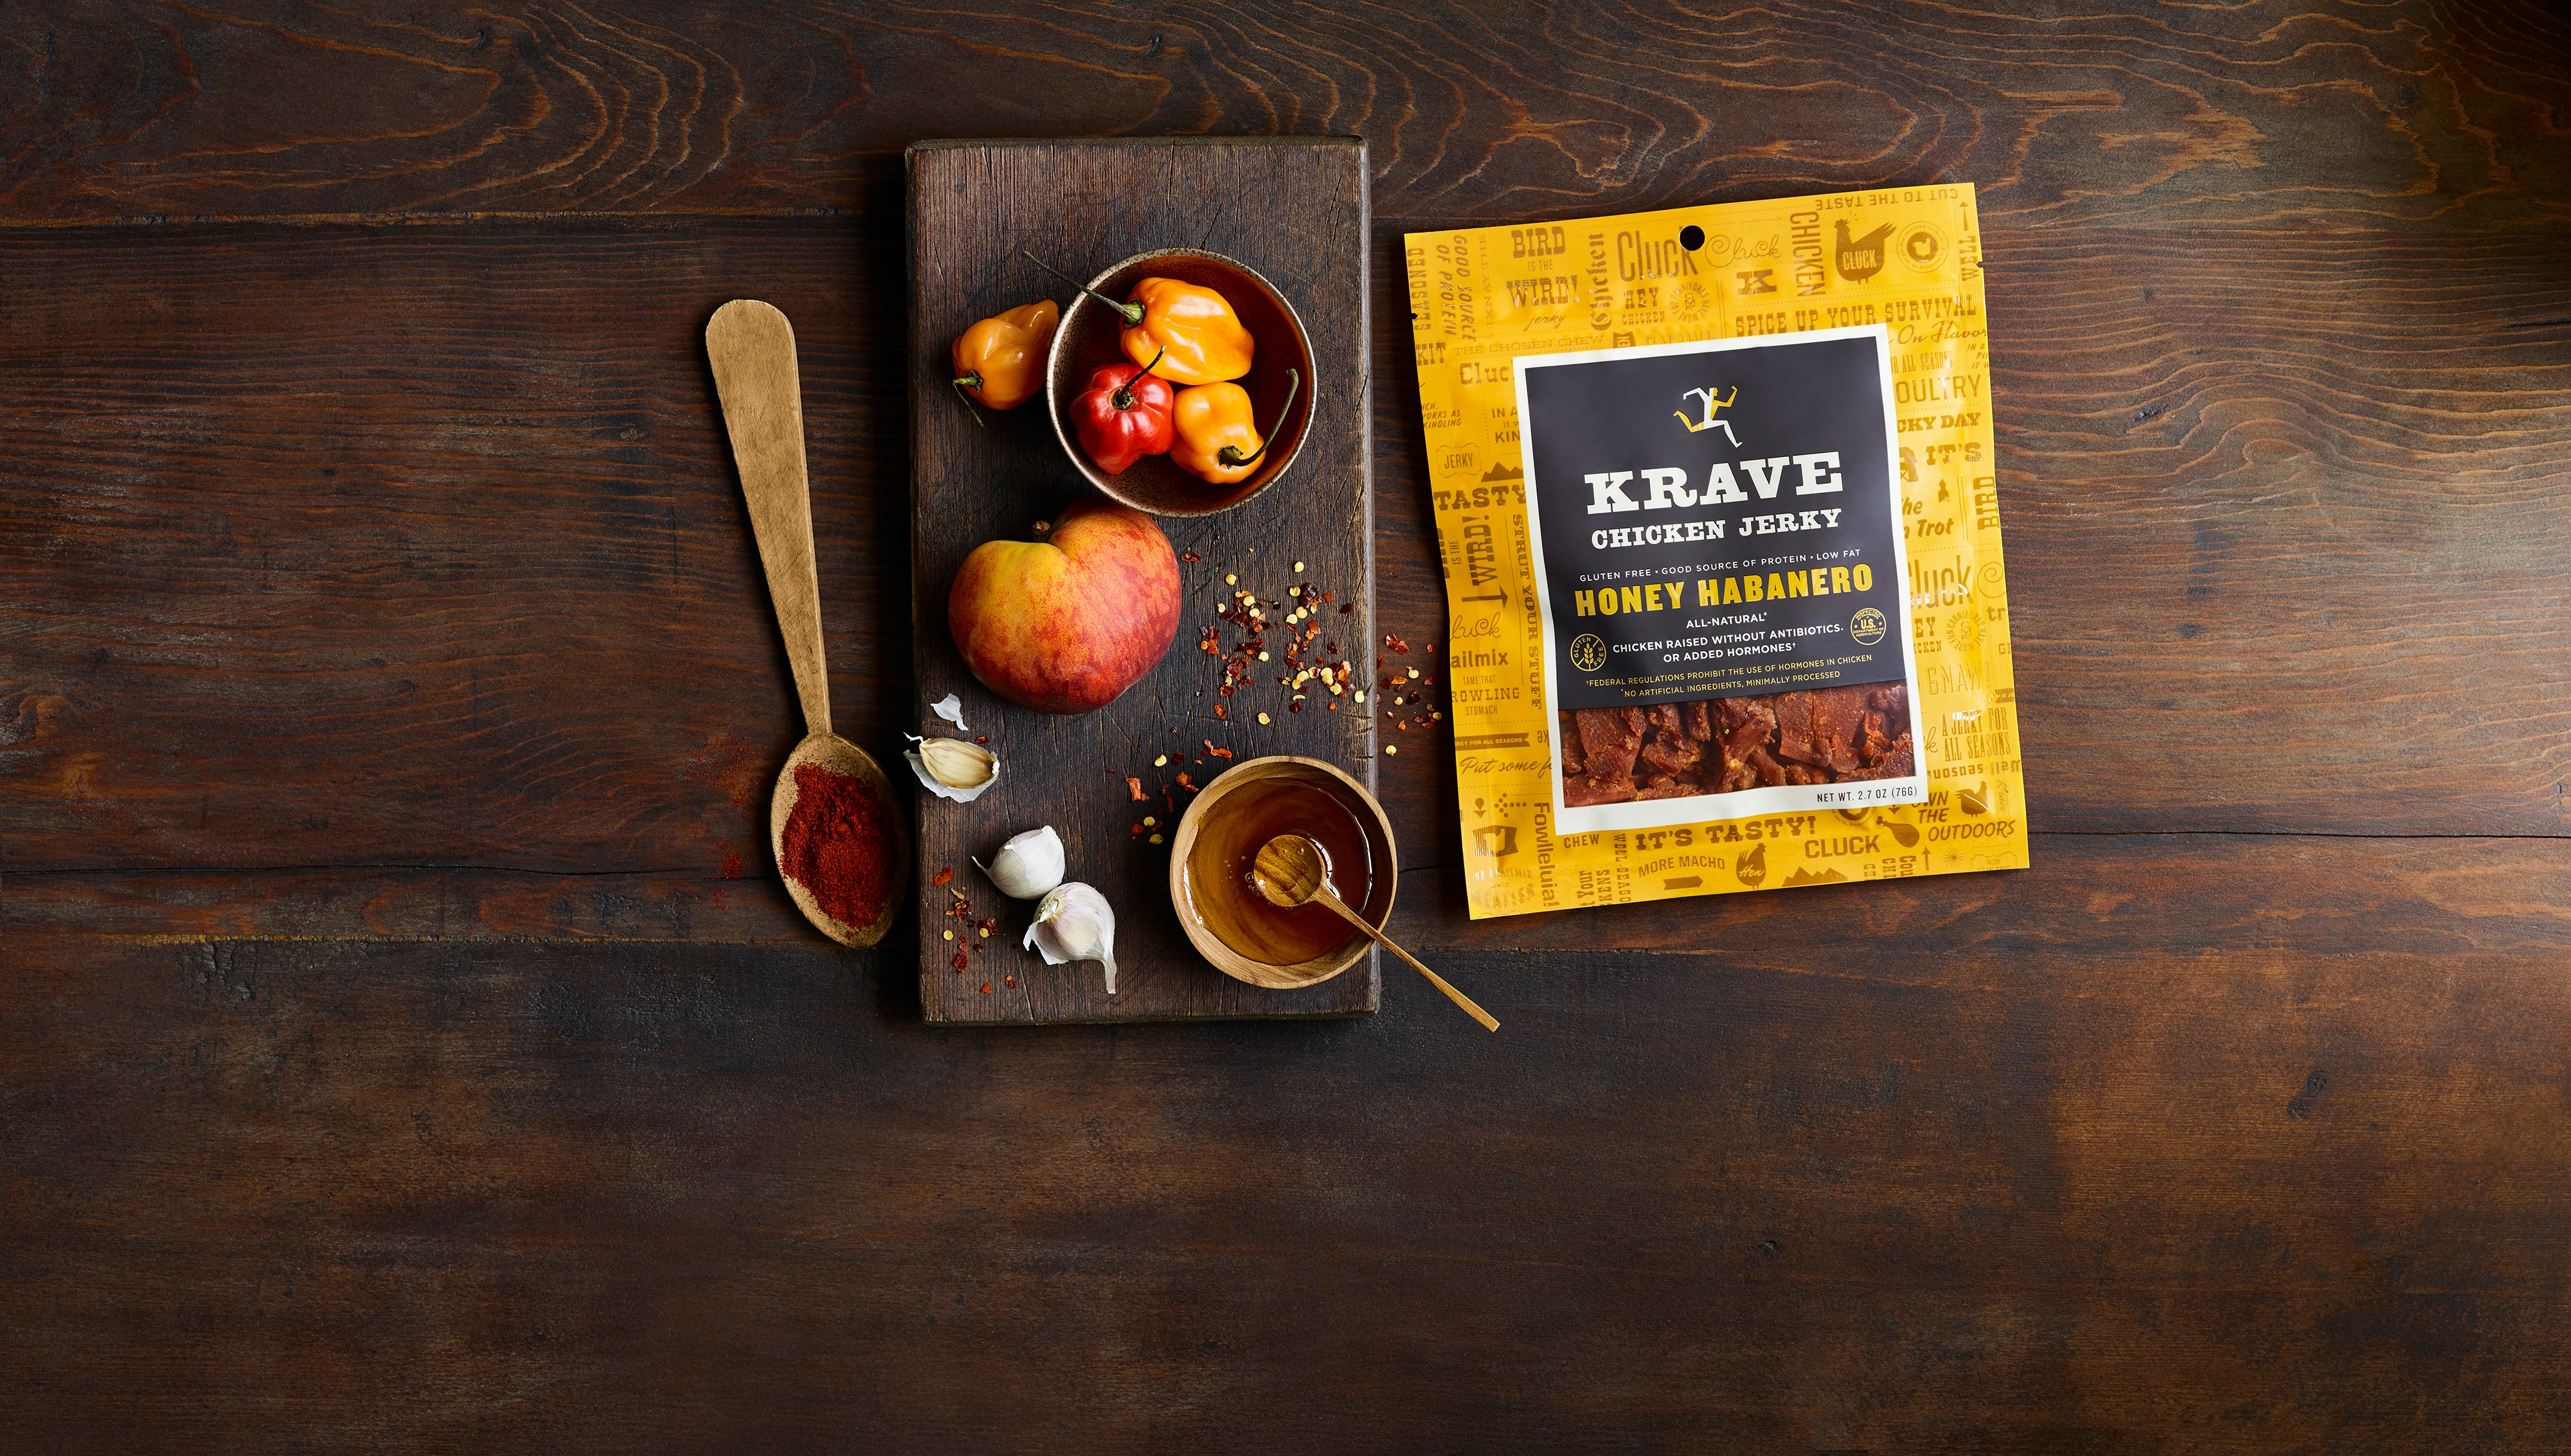 Krave_HoneyHabeneroChicken_IngredientsBag_V1.jpg